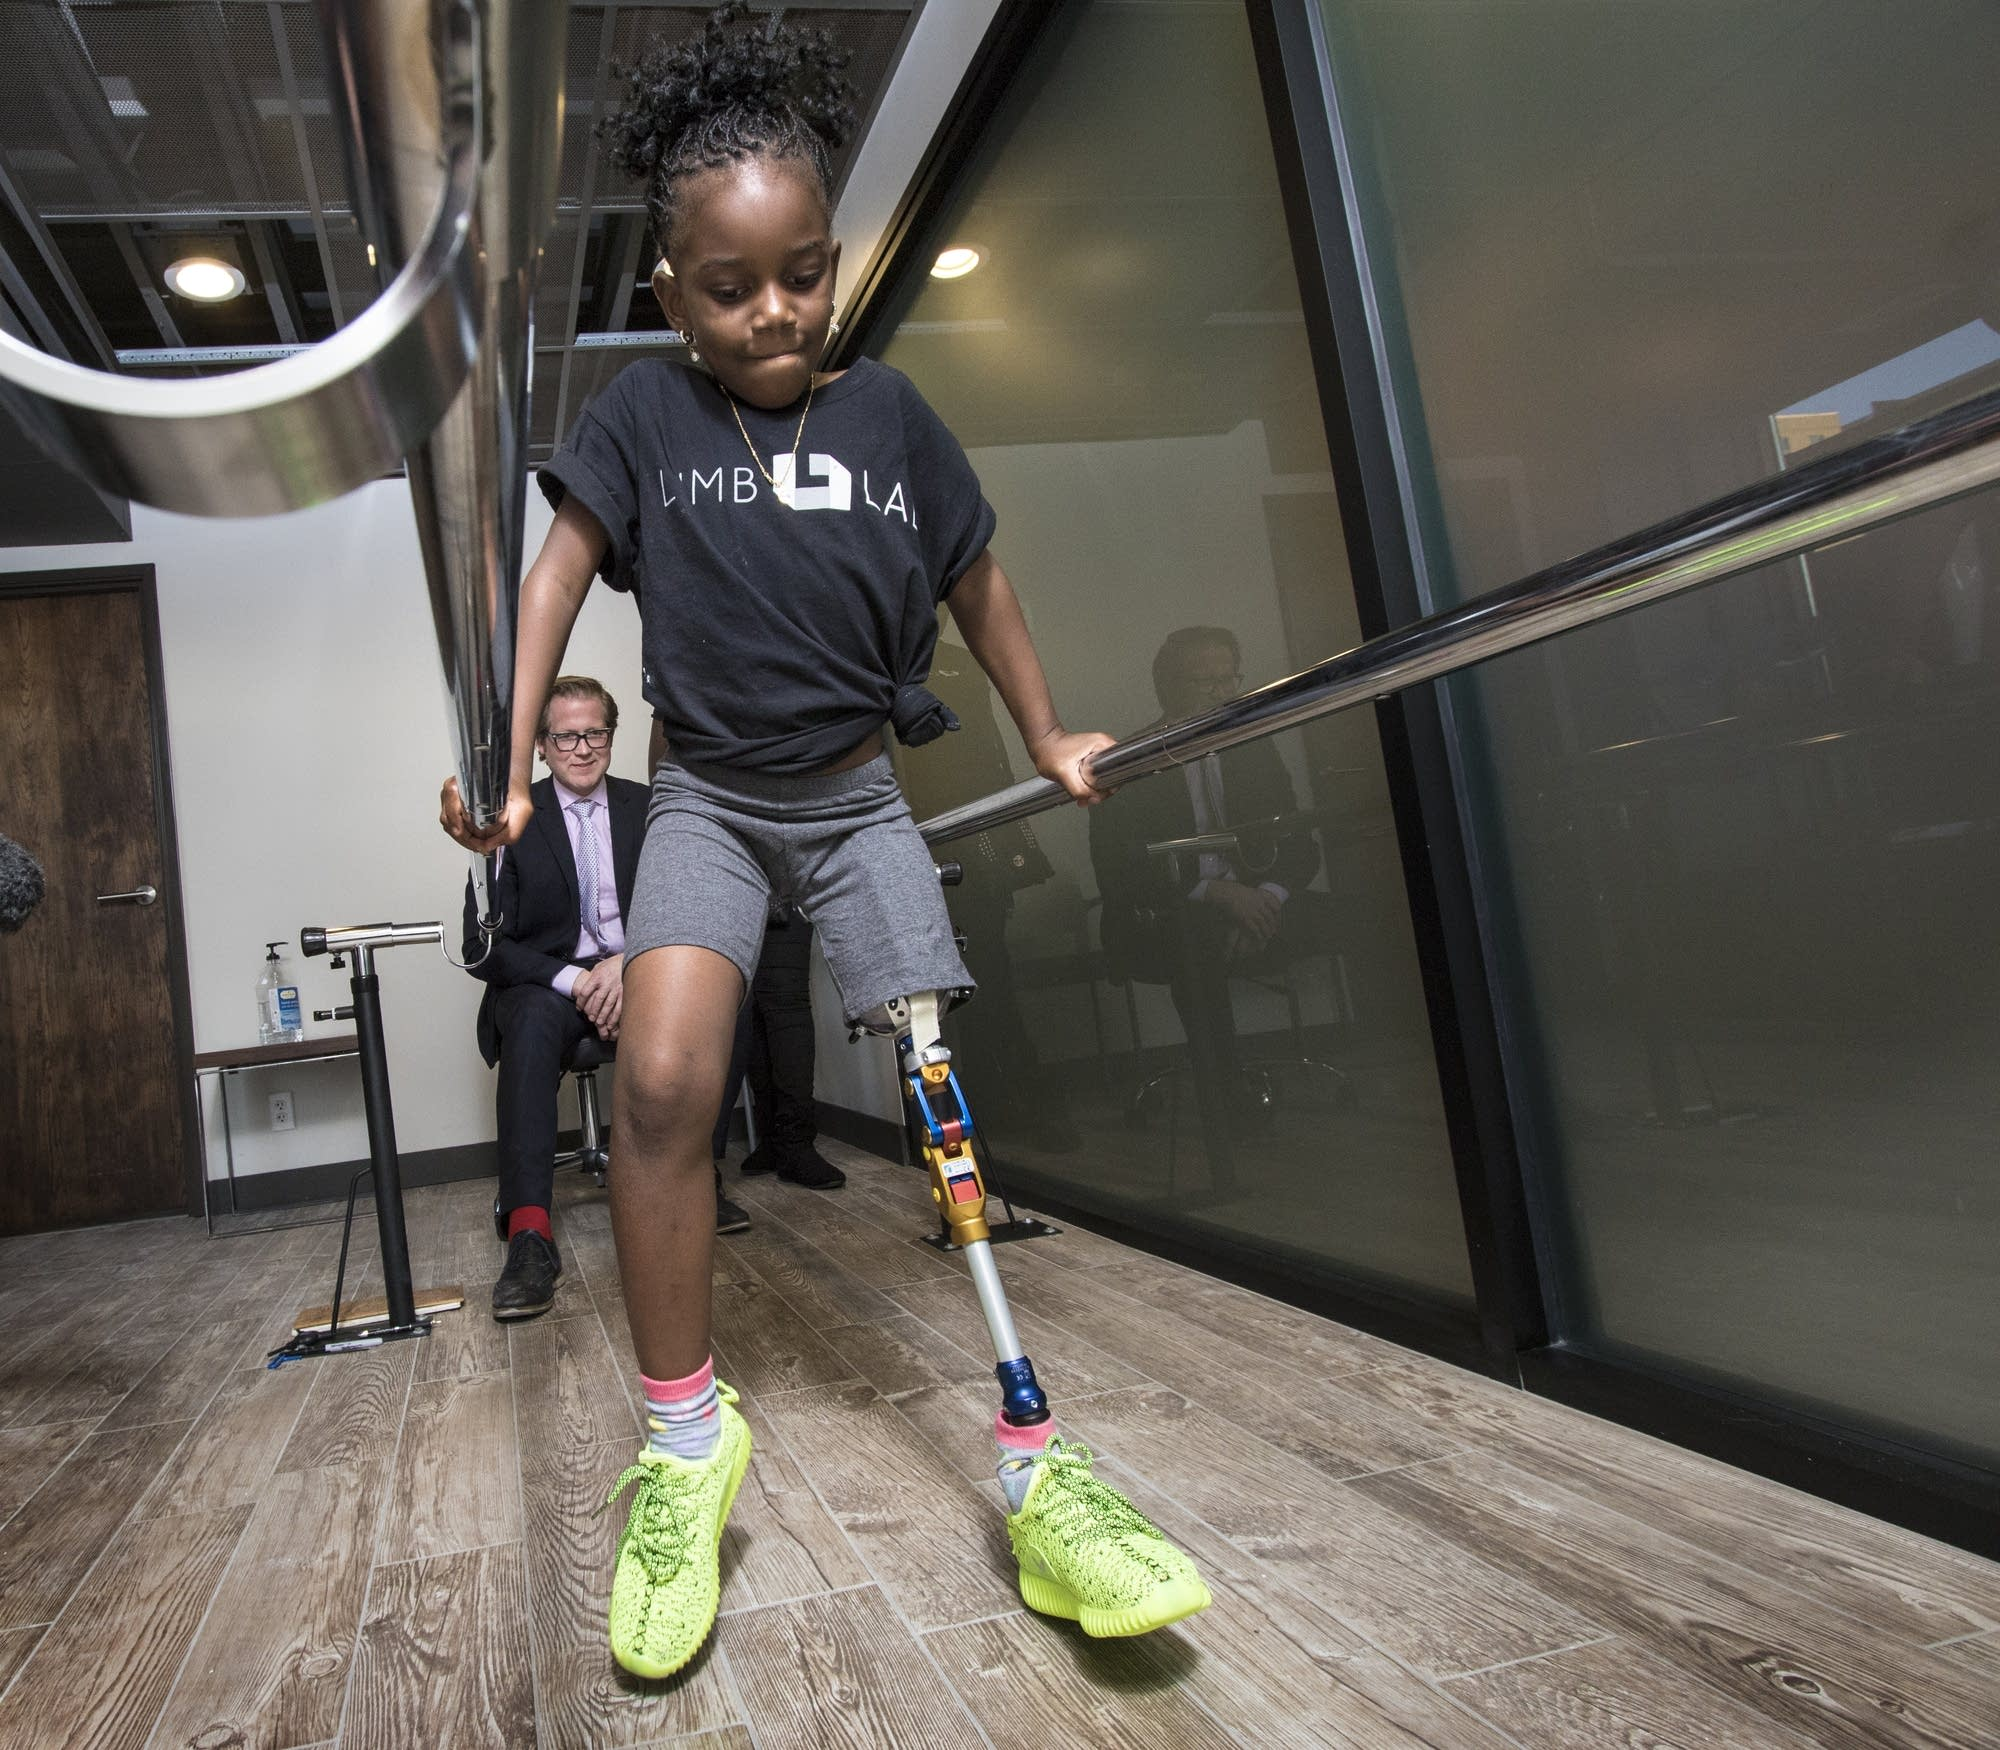 Rusheka Goodhall tests a new prosthetic leg.